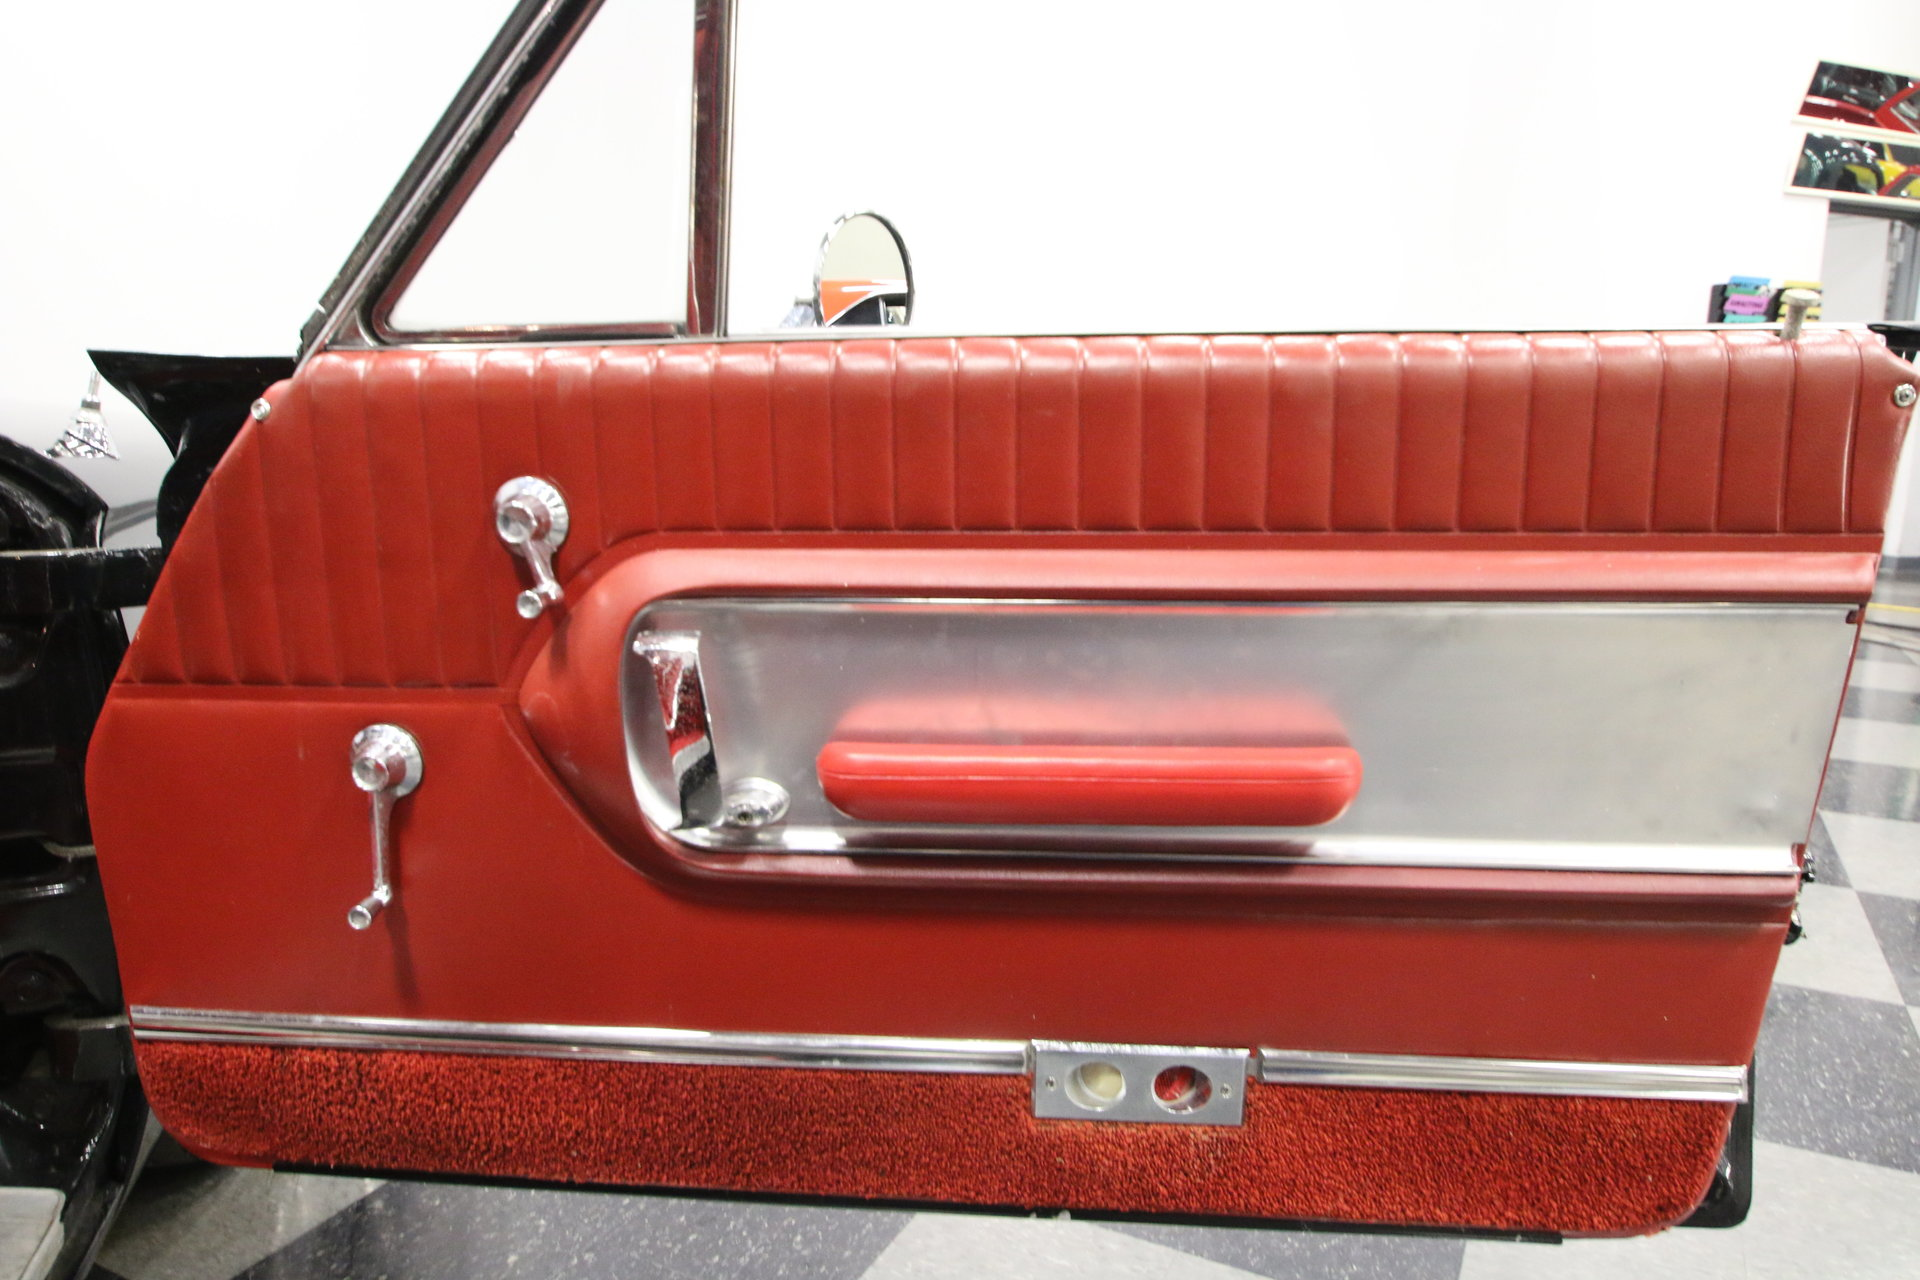 1964 Ford Galaxie Streetside Classics The Nations Trusted Rear End Codes View 360